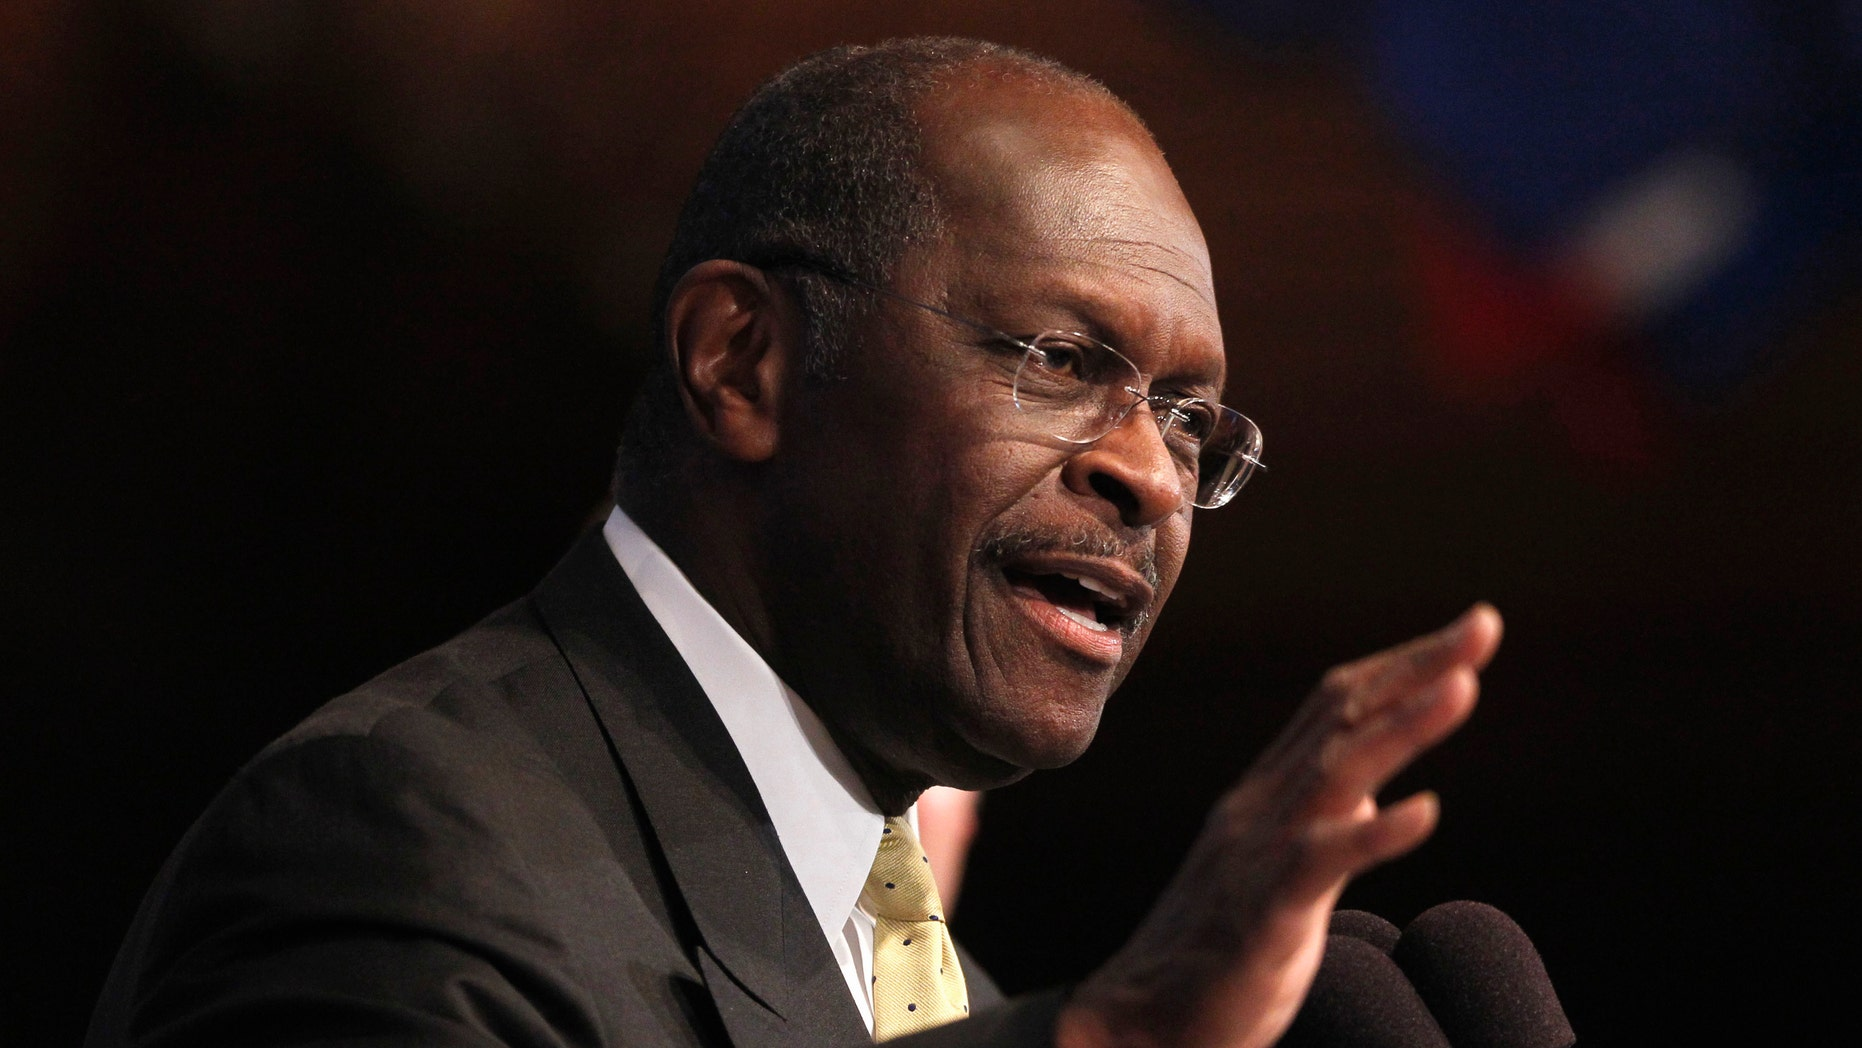 Republican presidential candidate, Herman Cain sings for members of the audience at the National Press Club in Washington, Monday, Oct. 31, 2011. (AP Photo/Pablo Martinez Monsivais)